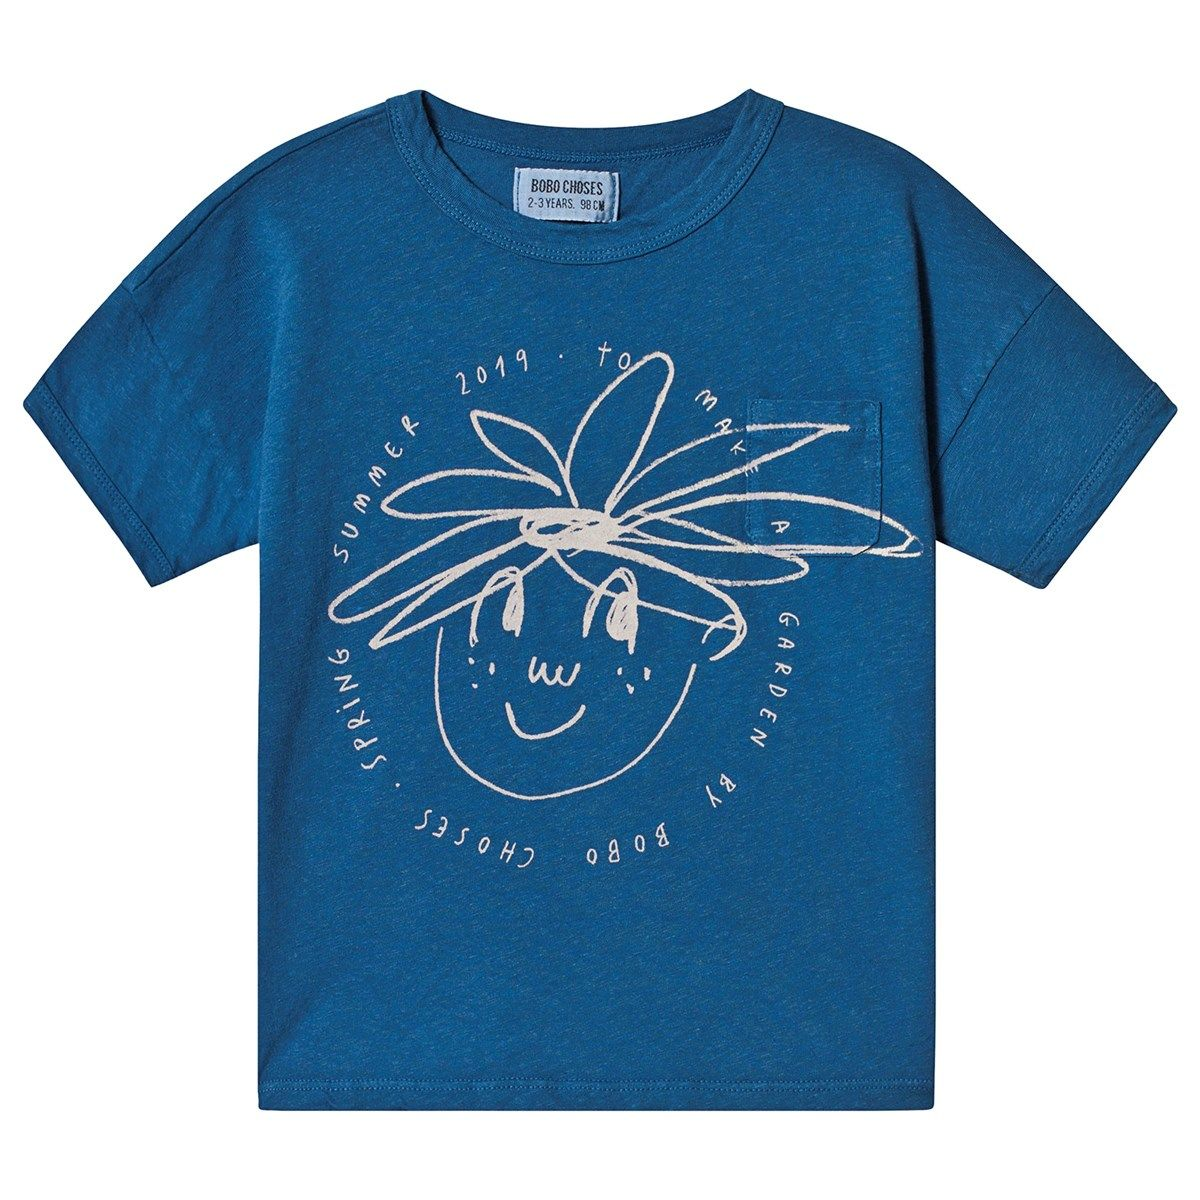 878a17e5a41 Dress your little one in sustainable style with the Daisy Linen T-Shirt in  Seaport from the bestselling Spanish brand Bobo Choses.